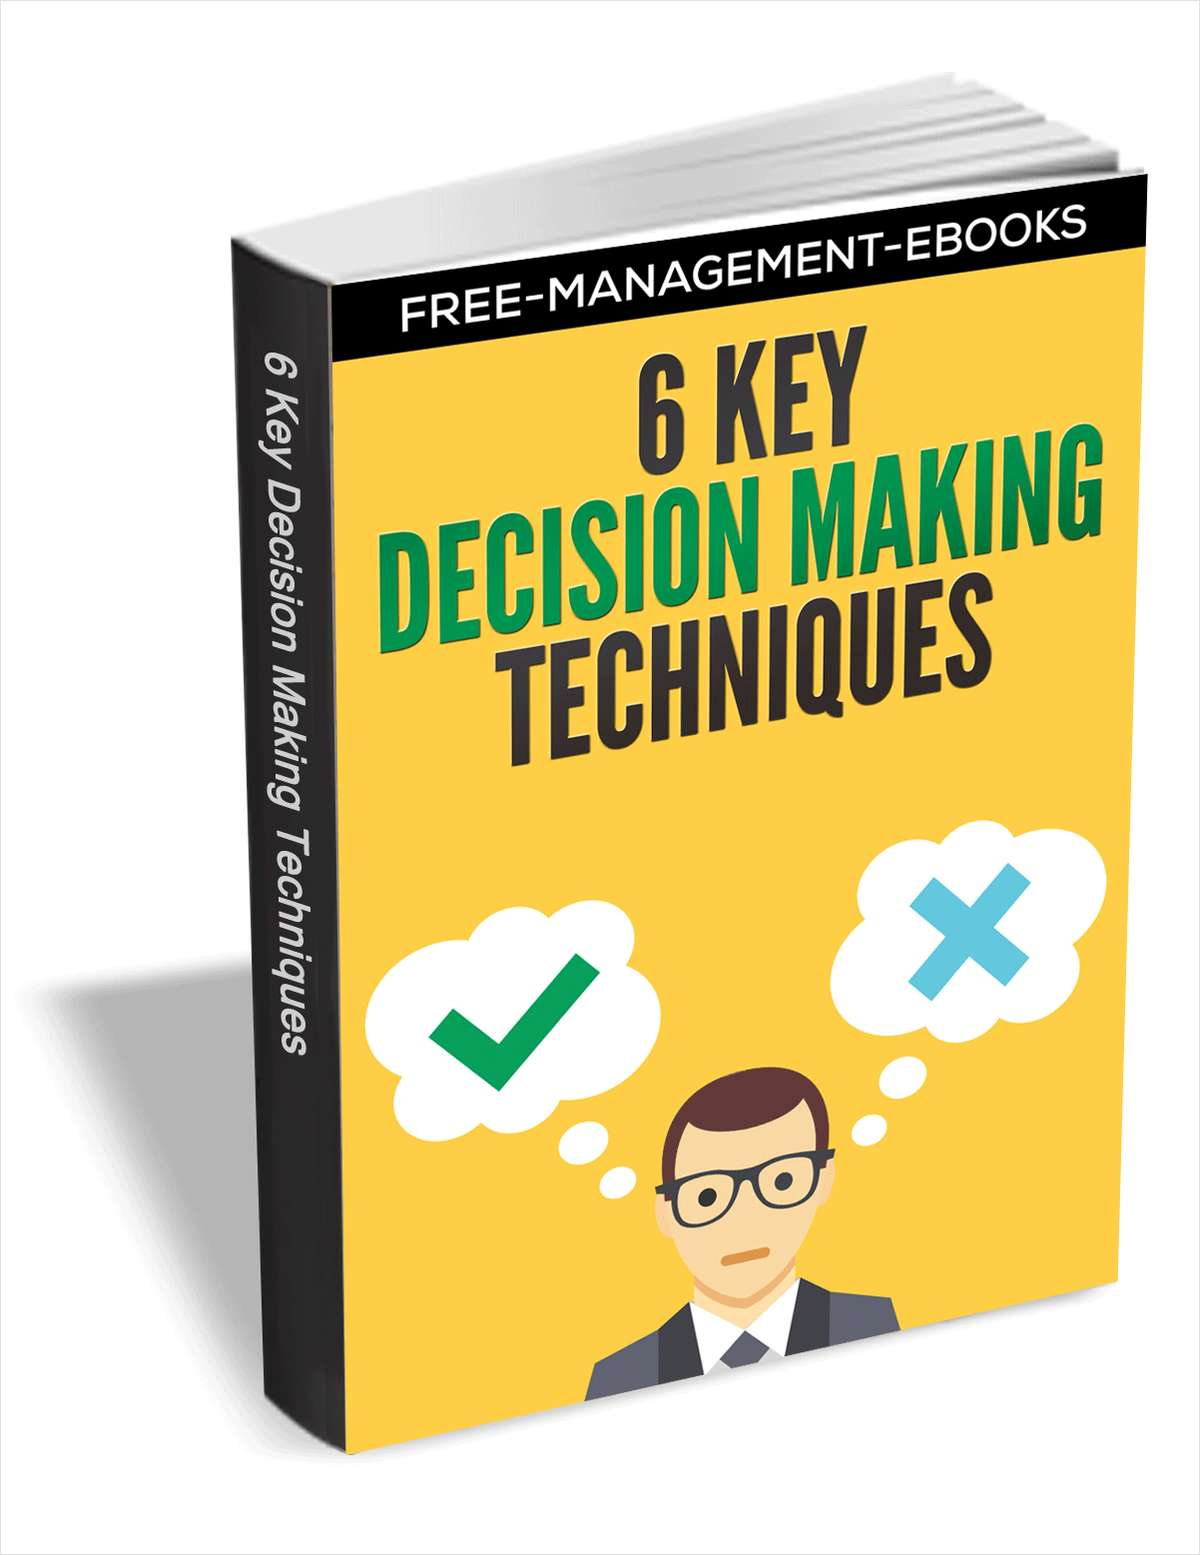 6 Key Decision Making Techniques